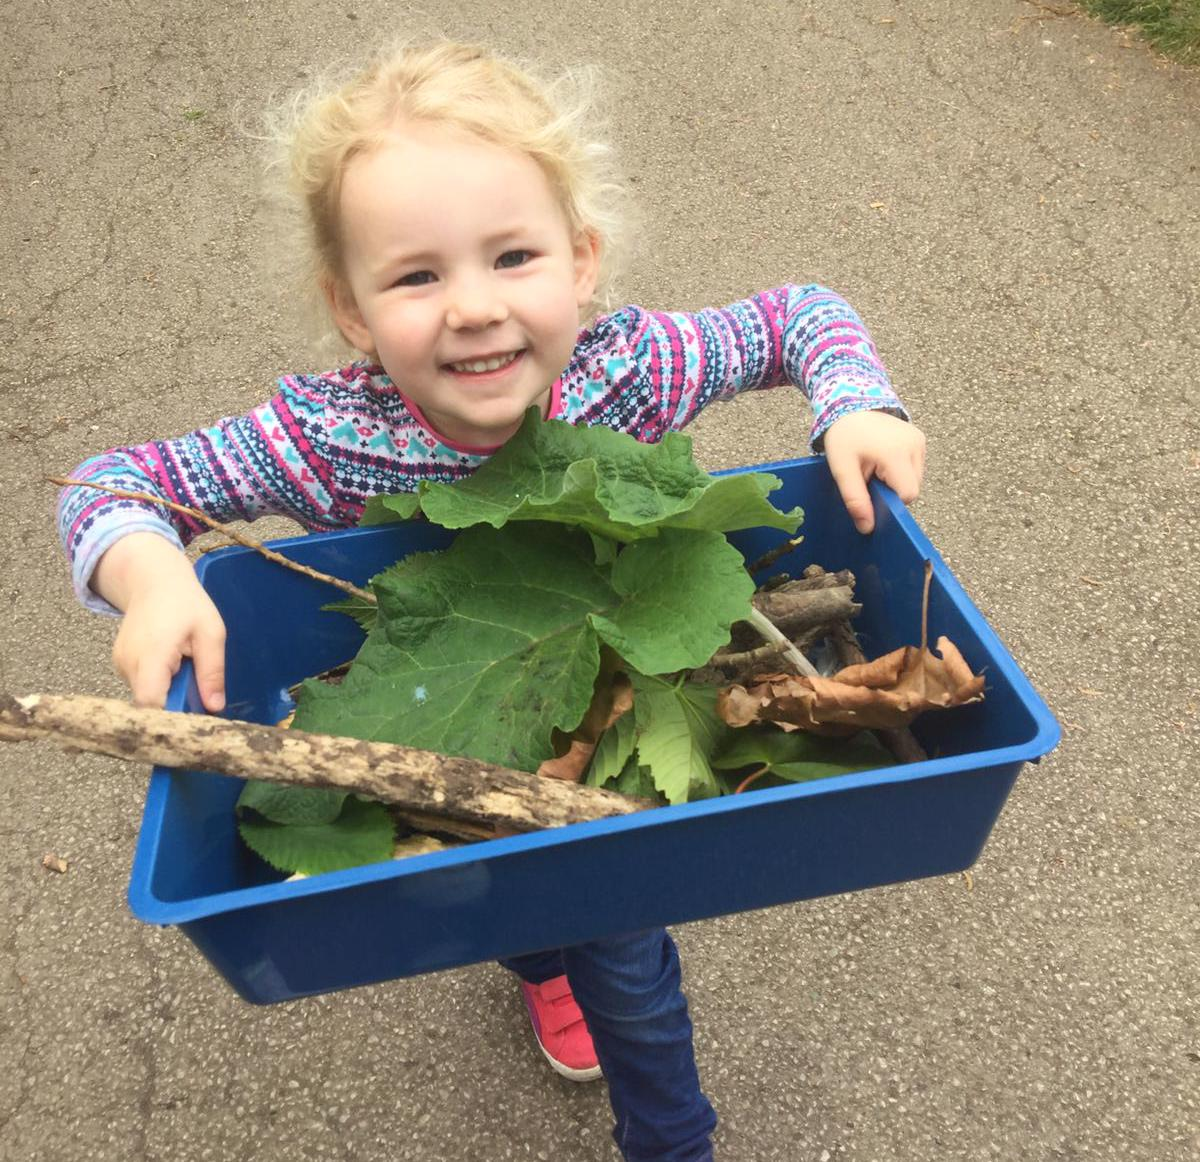 Child holding a box filled with sticks and leaves